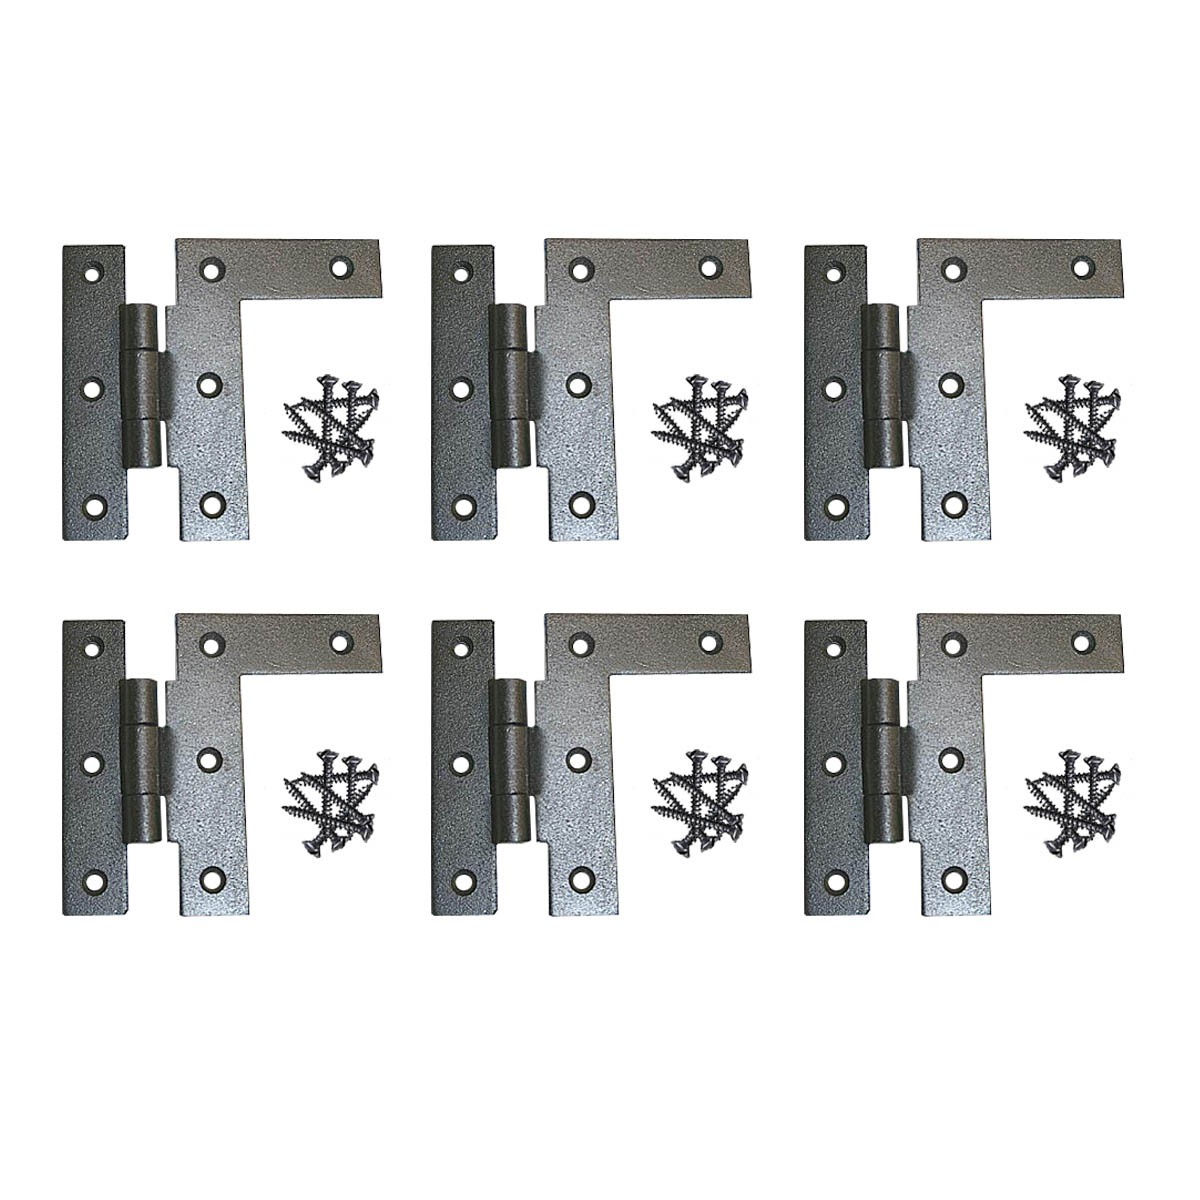 Wrought Iron H-L Cabinet Hinges 3-1/2 Inch H with 3/8 ...